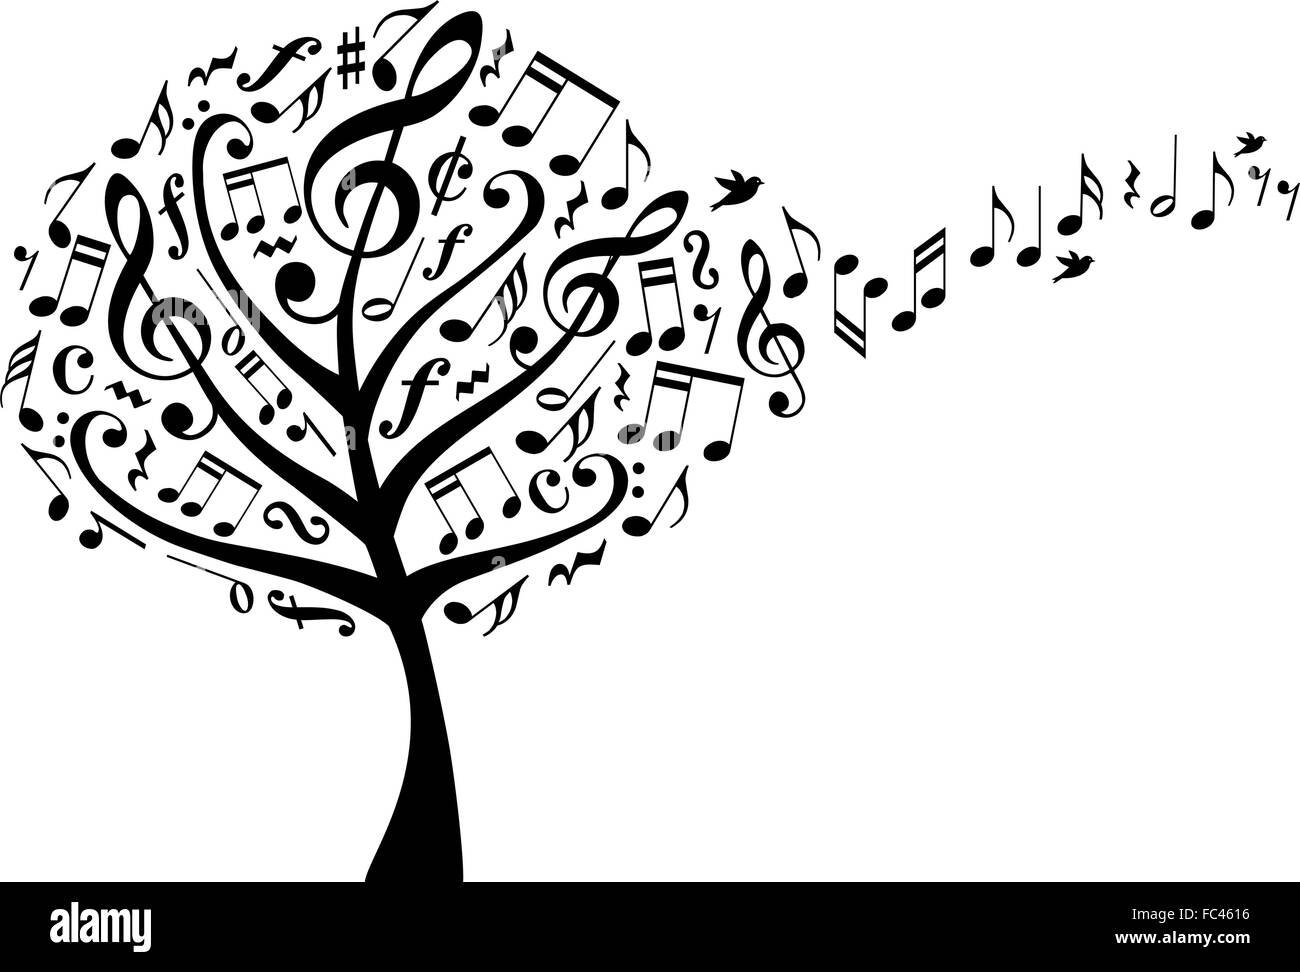 music tree with treble clefs and flying musical notes, vector illustration - Stock Image